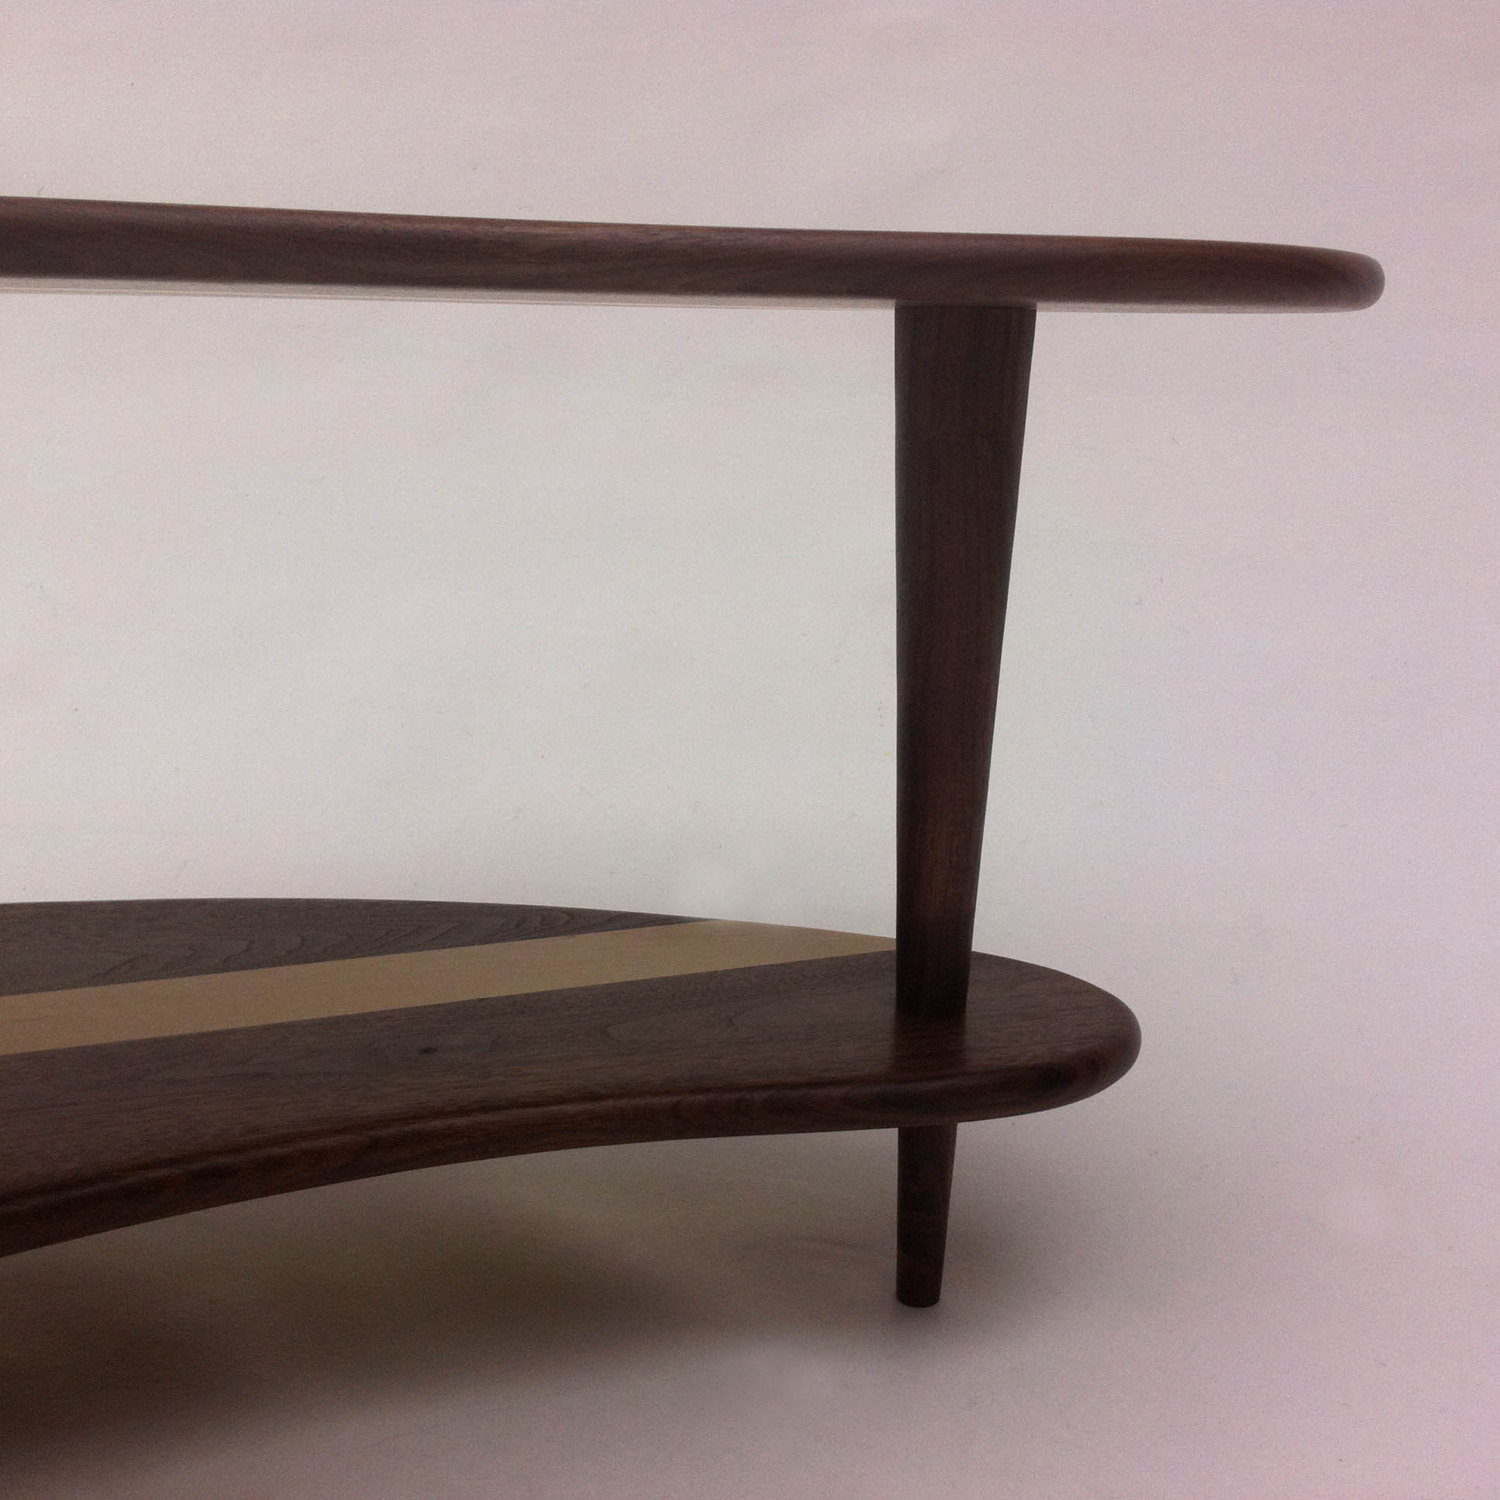 Mid century modern coffee cocktail table solid walnut with shelf mid century modern coffee cocktail table solid walnut with shelf kidney bean shaped boomerang design w tapered walnut legs geotapseo Choice Image